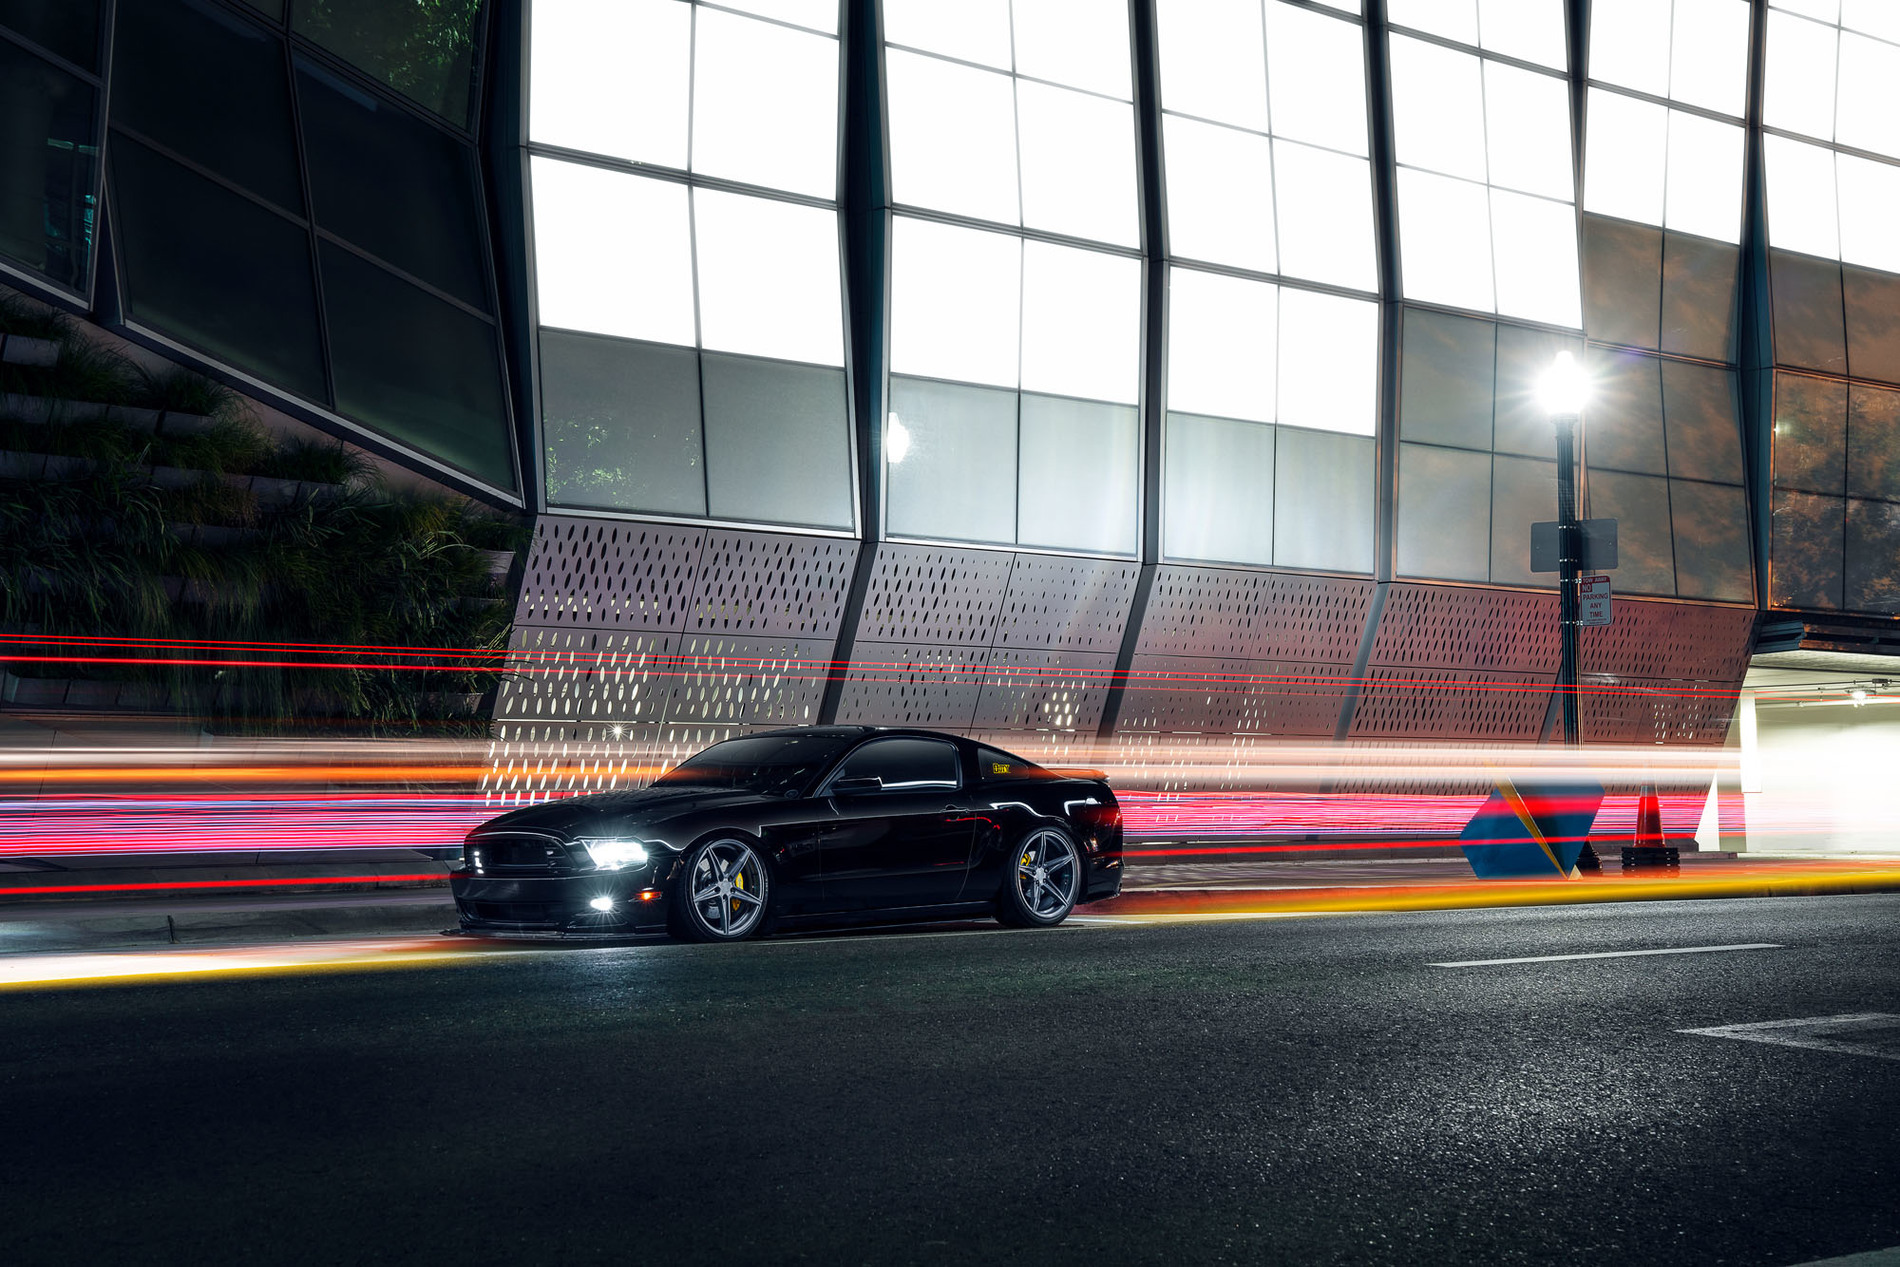 ford-mustang-gt-xo-lucury-auckland-c-oncave-wheels.jpg